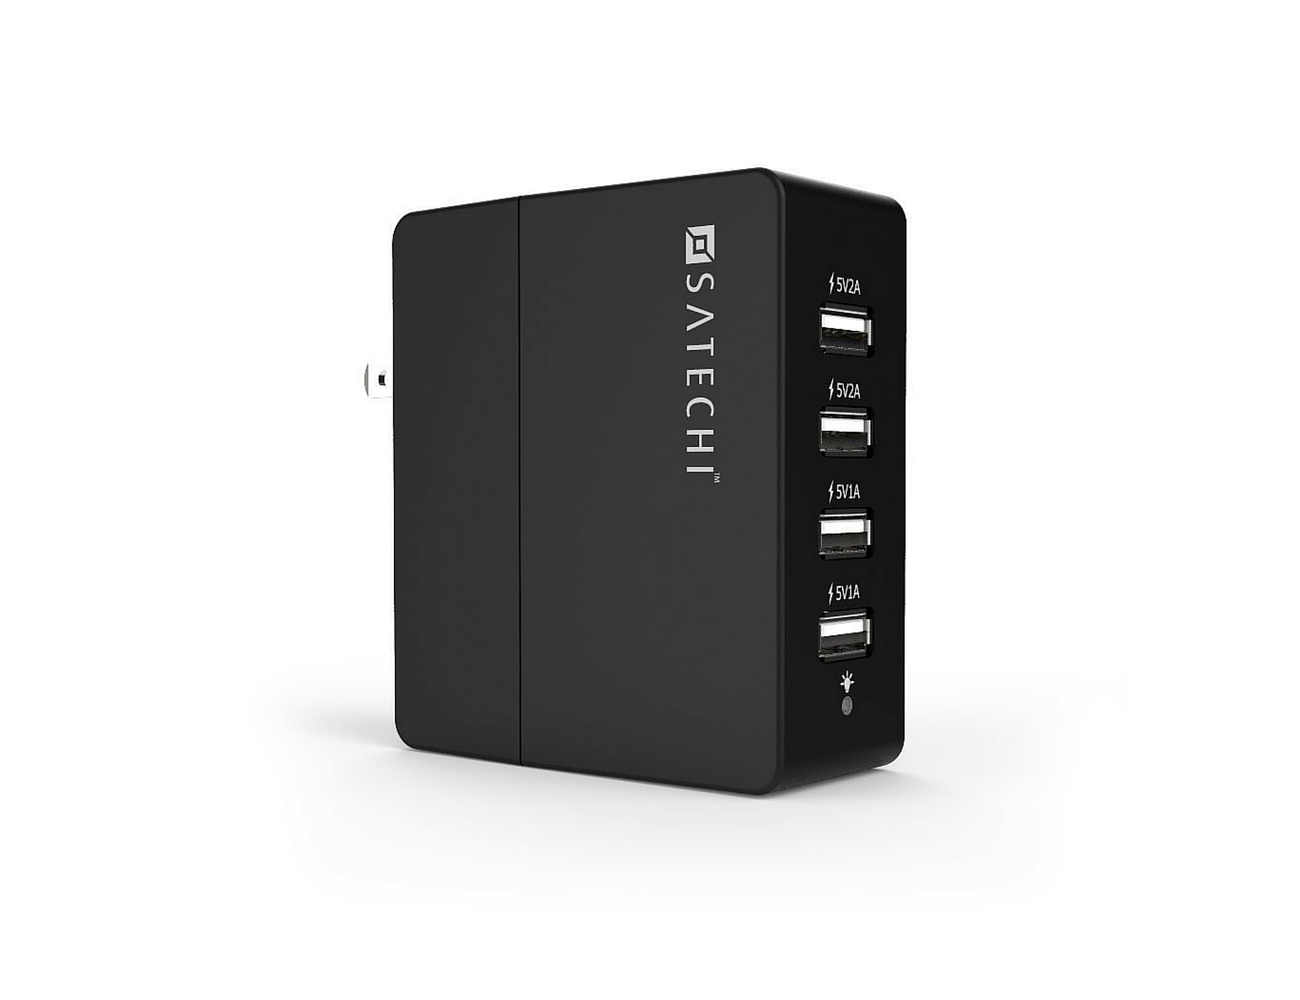 four-port-usb-charger-by-satechi-02